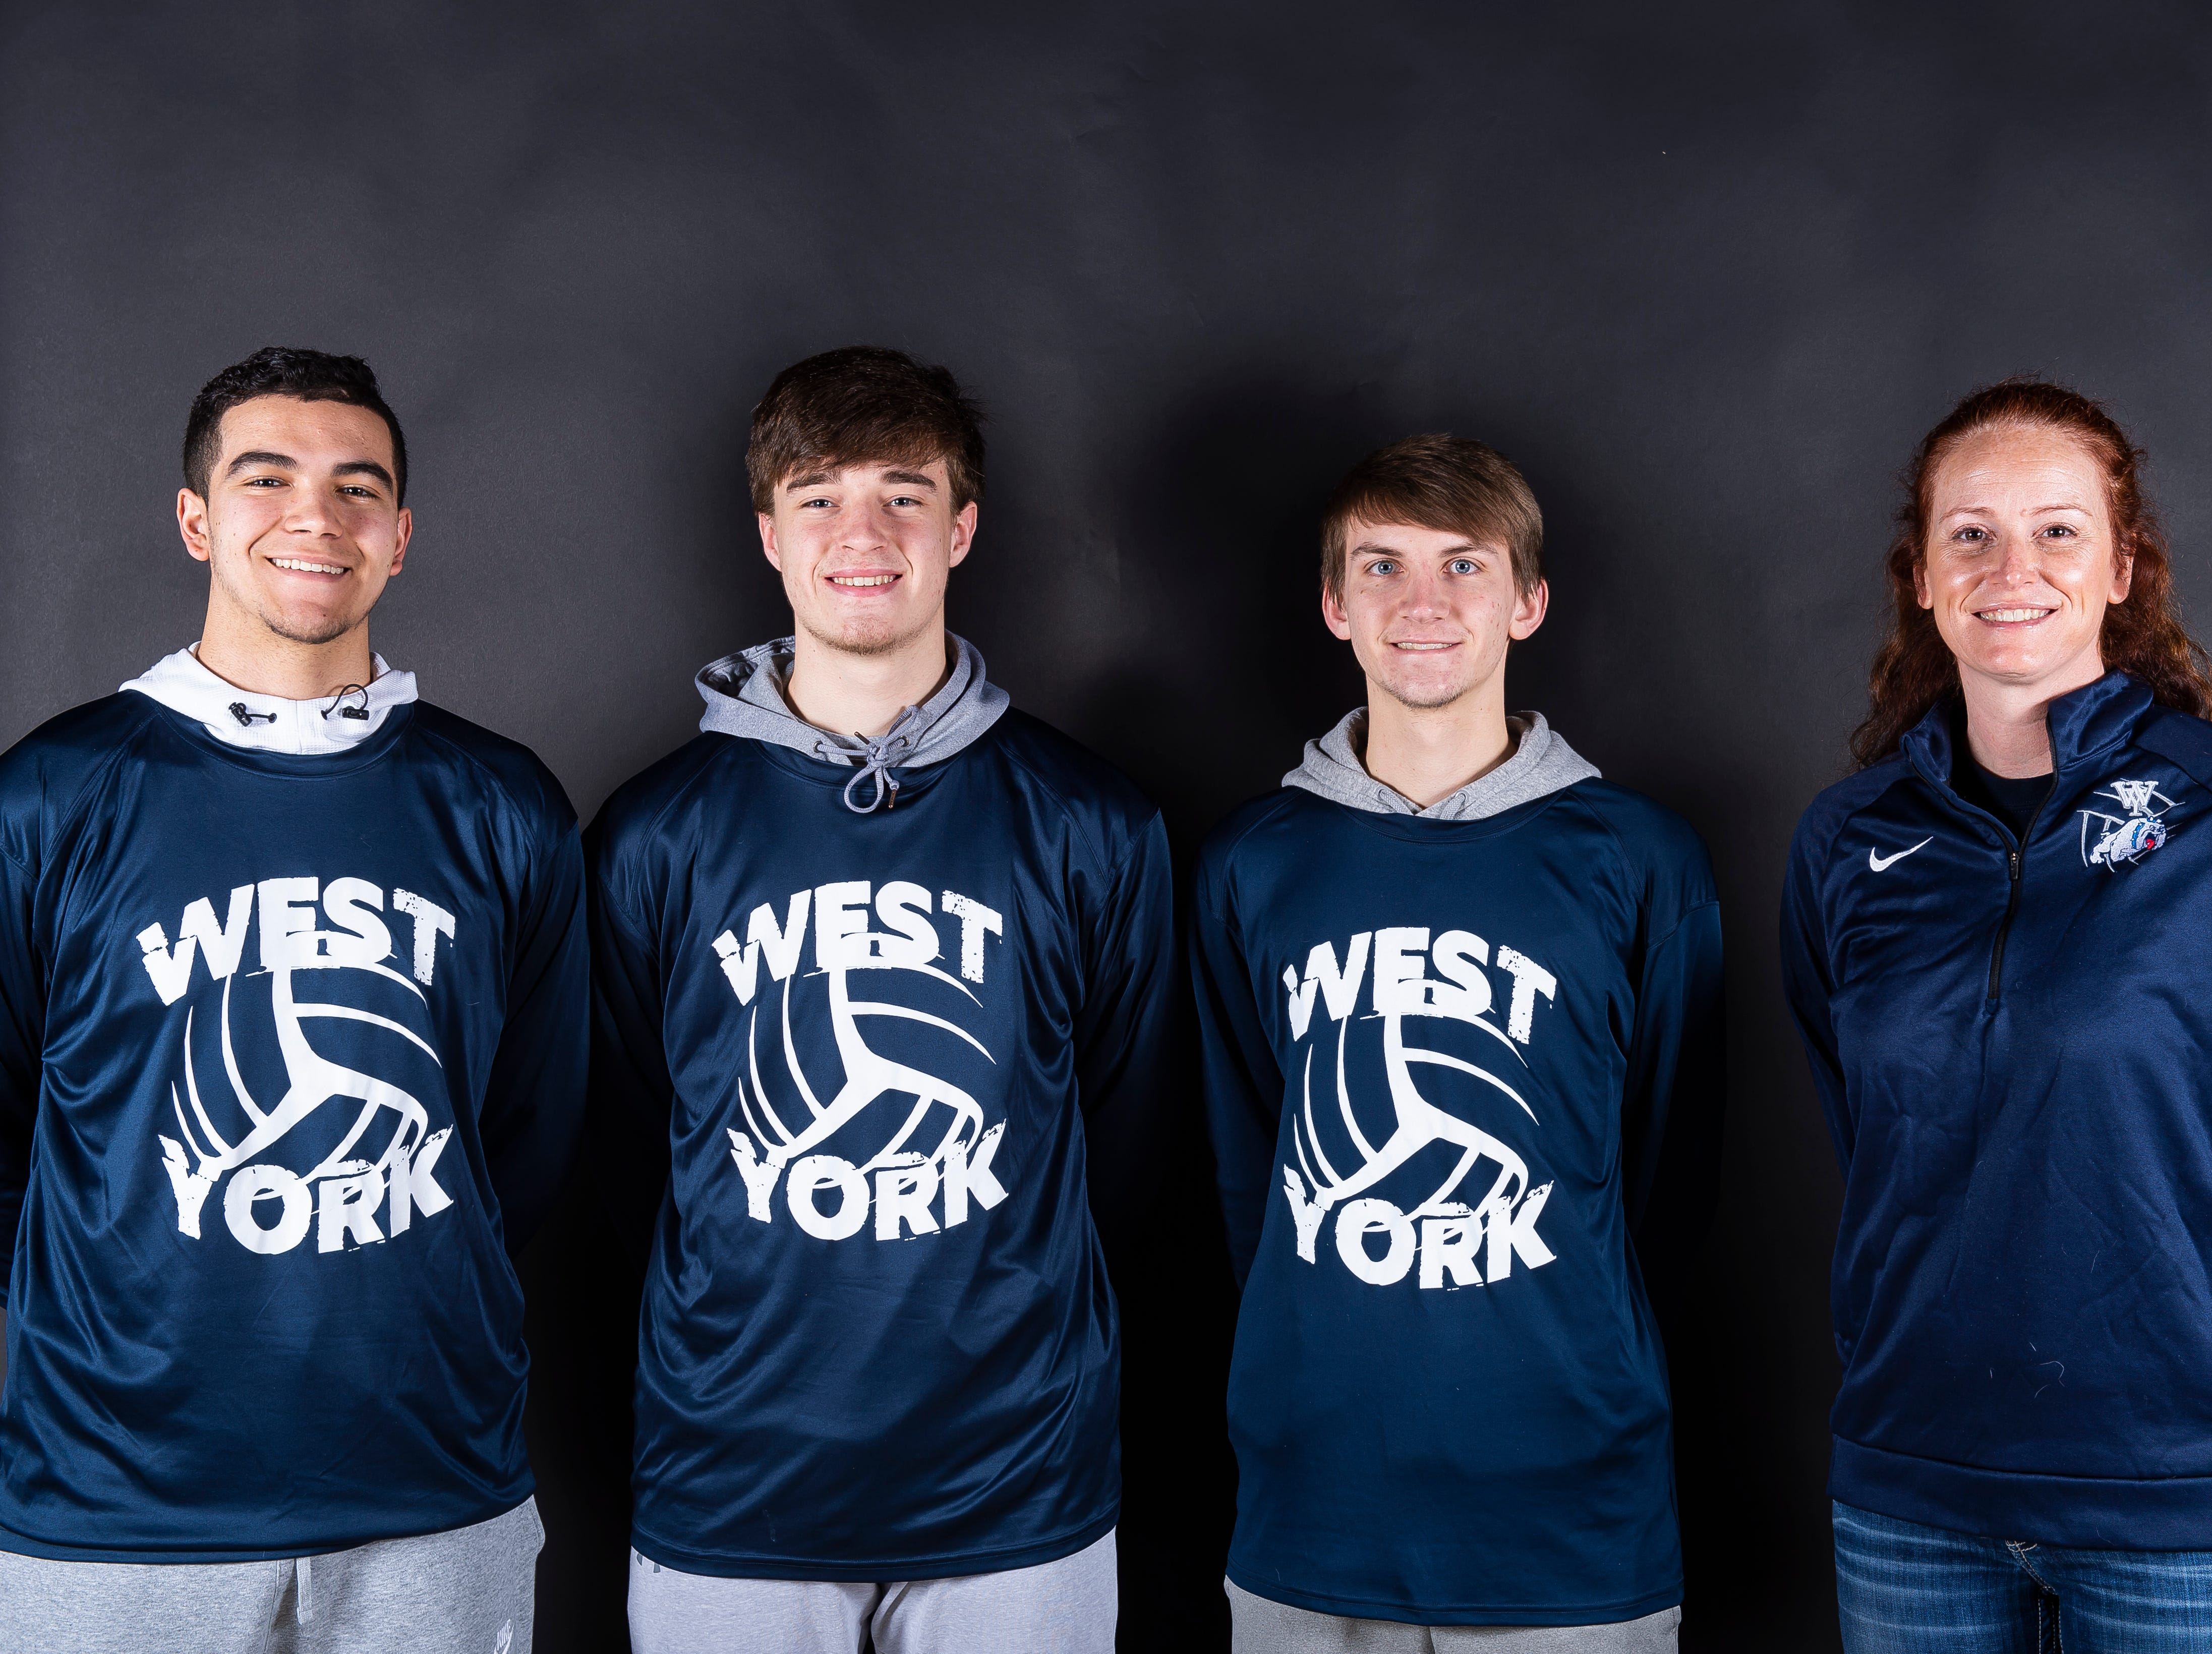 (From left) West York volleyball players Michael Washington, Alex McClellan and Adam Harsey pose with coach Amy Shoemaker in the GameTimePA photo booth during spring sports media day in York Sunday, March 10, 2019.